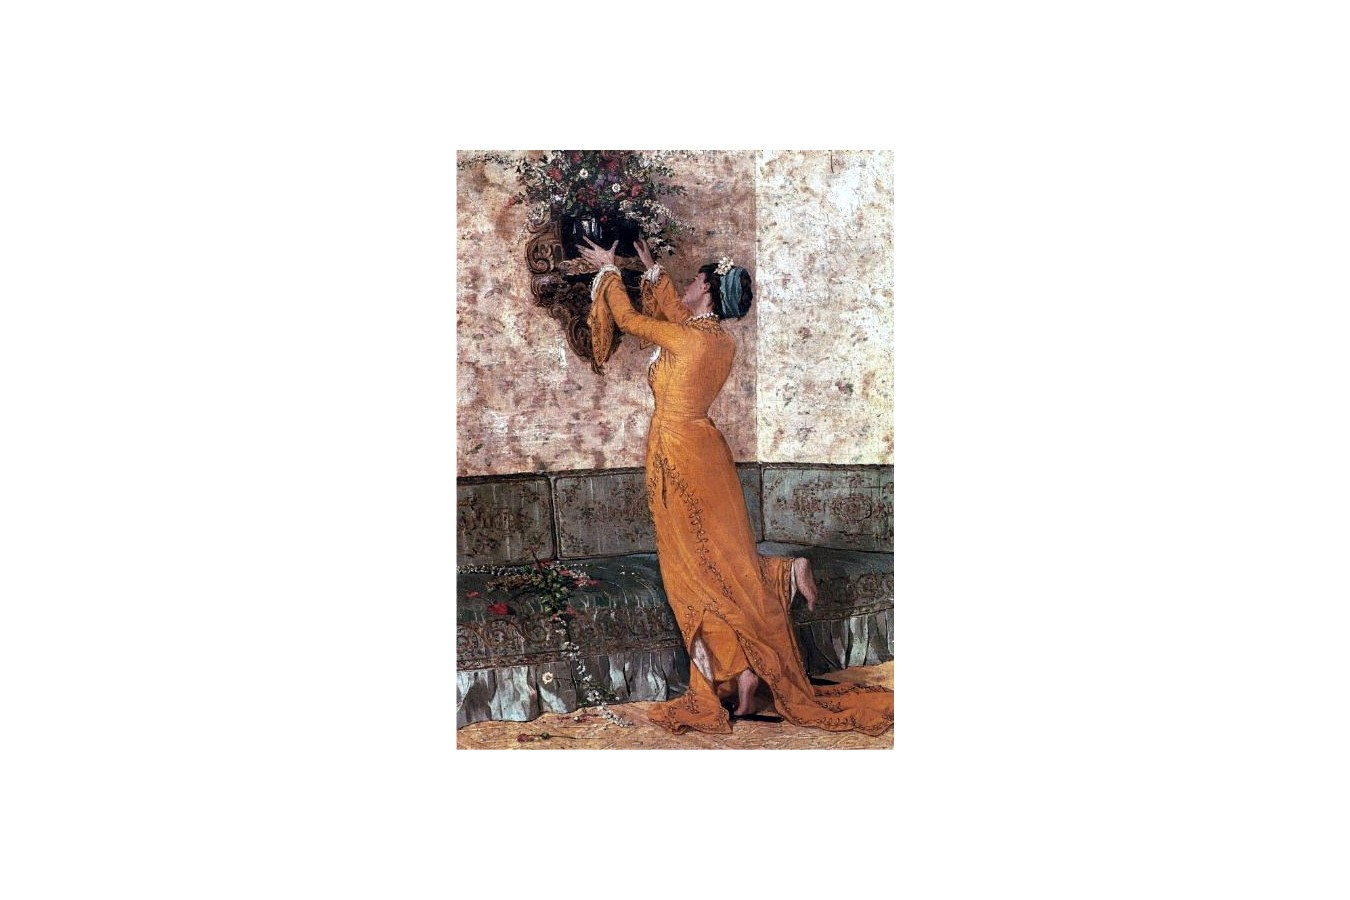 Puzzle Anatolian - The Girl with Vase, 1000 piese (8020) imagine